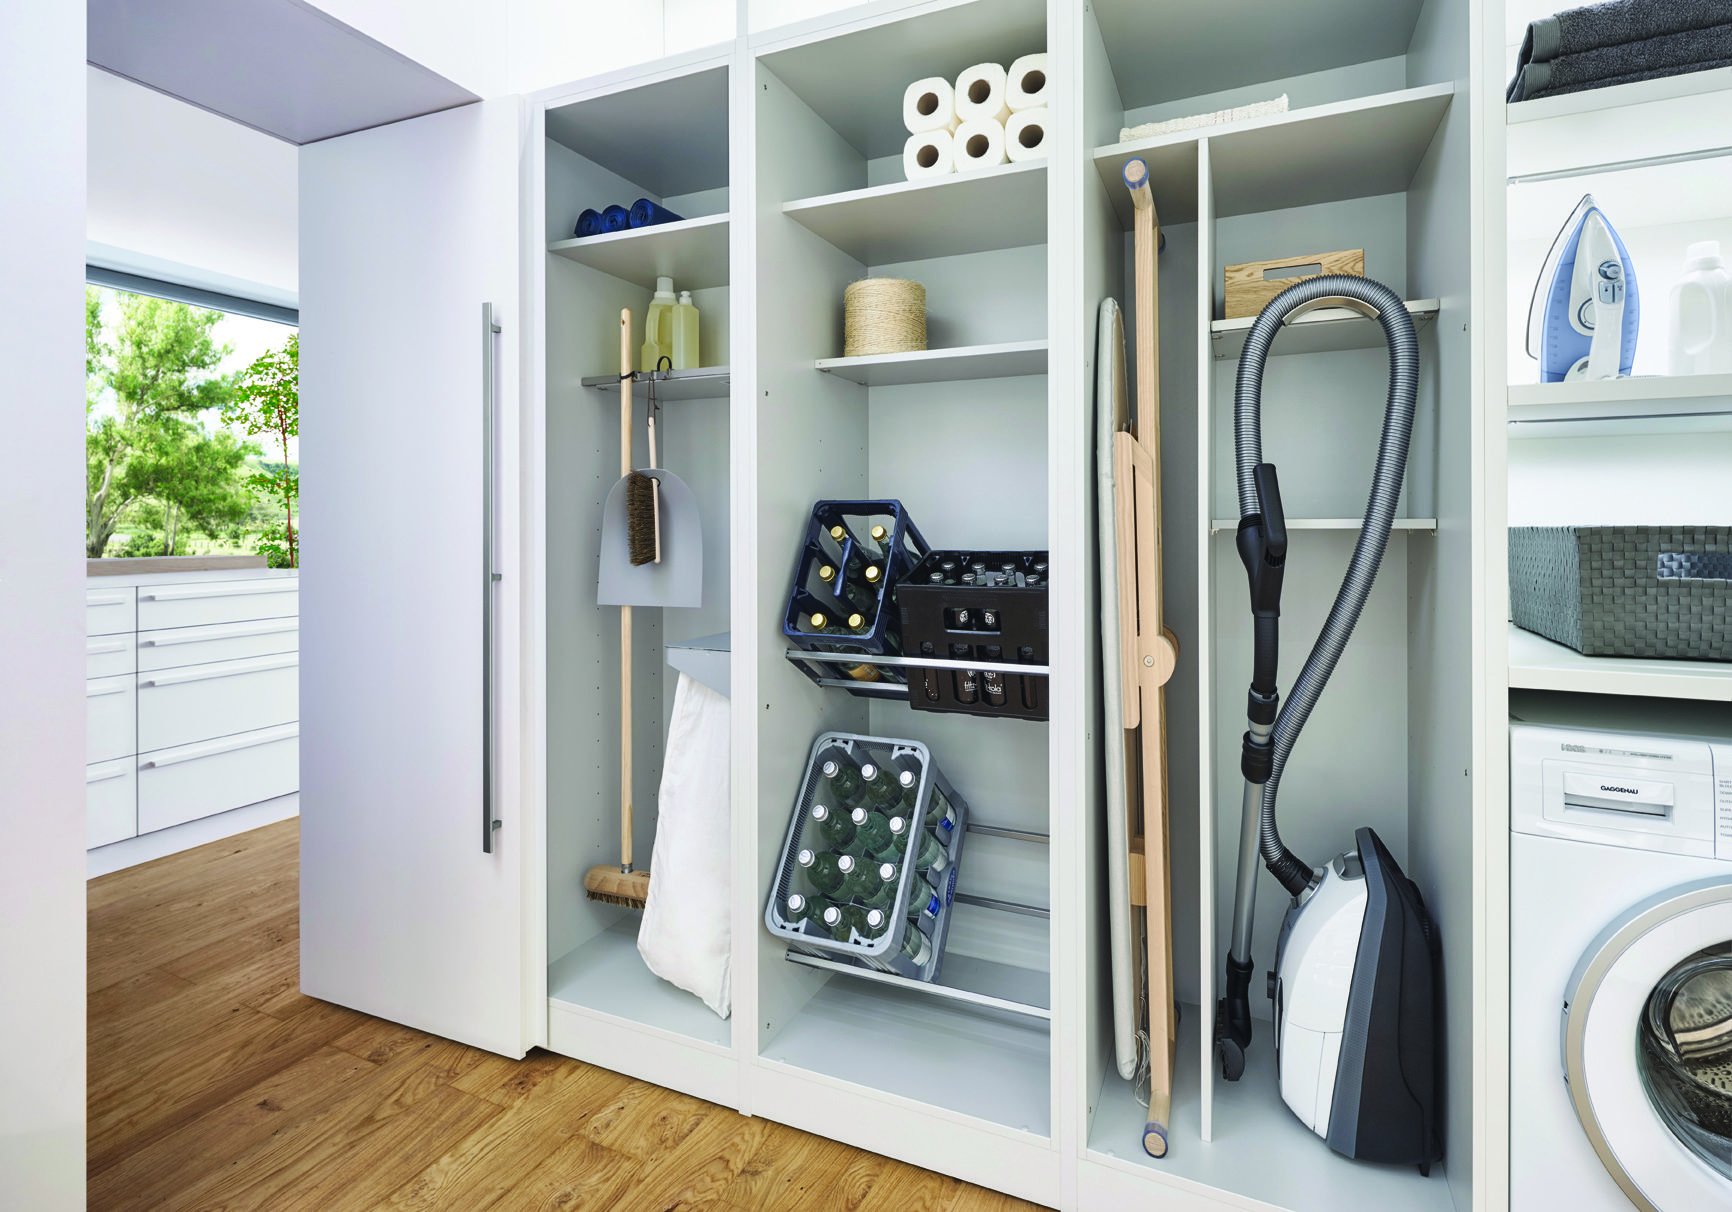 Home Kitchen Cupboards Laundry Room Design Laundry Design